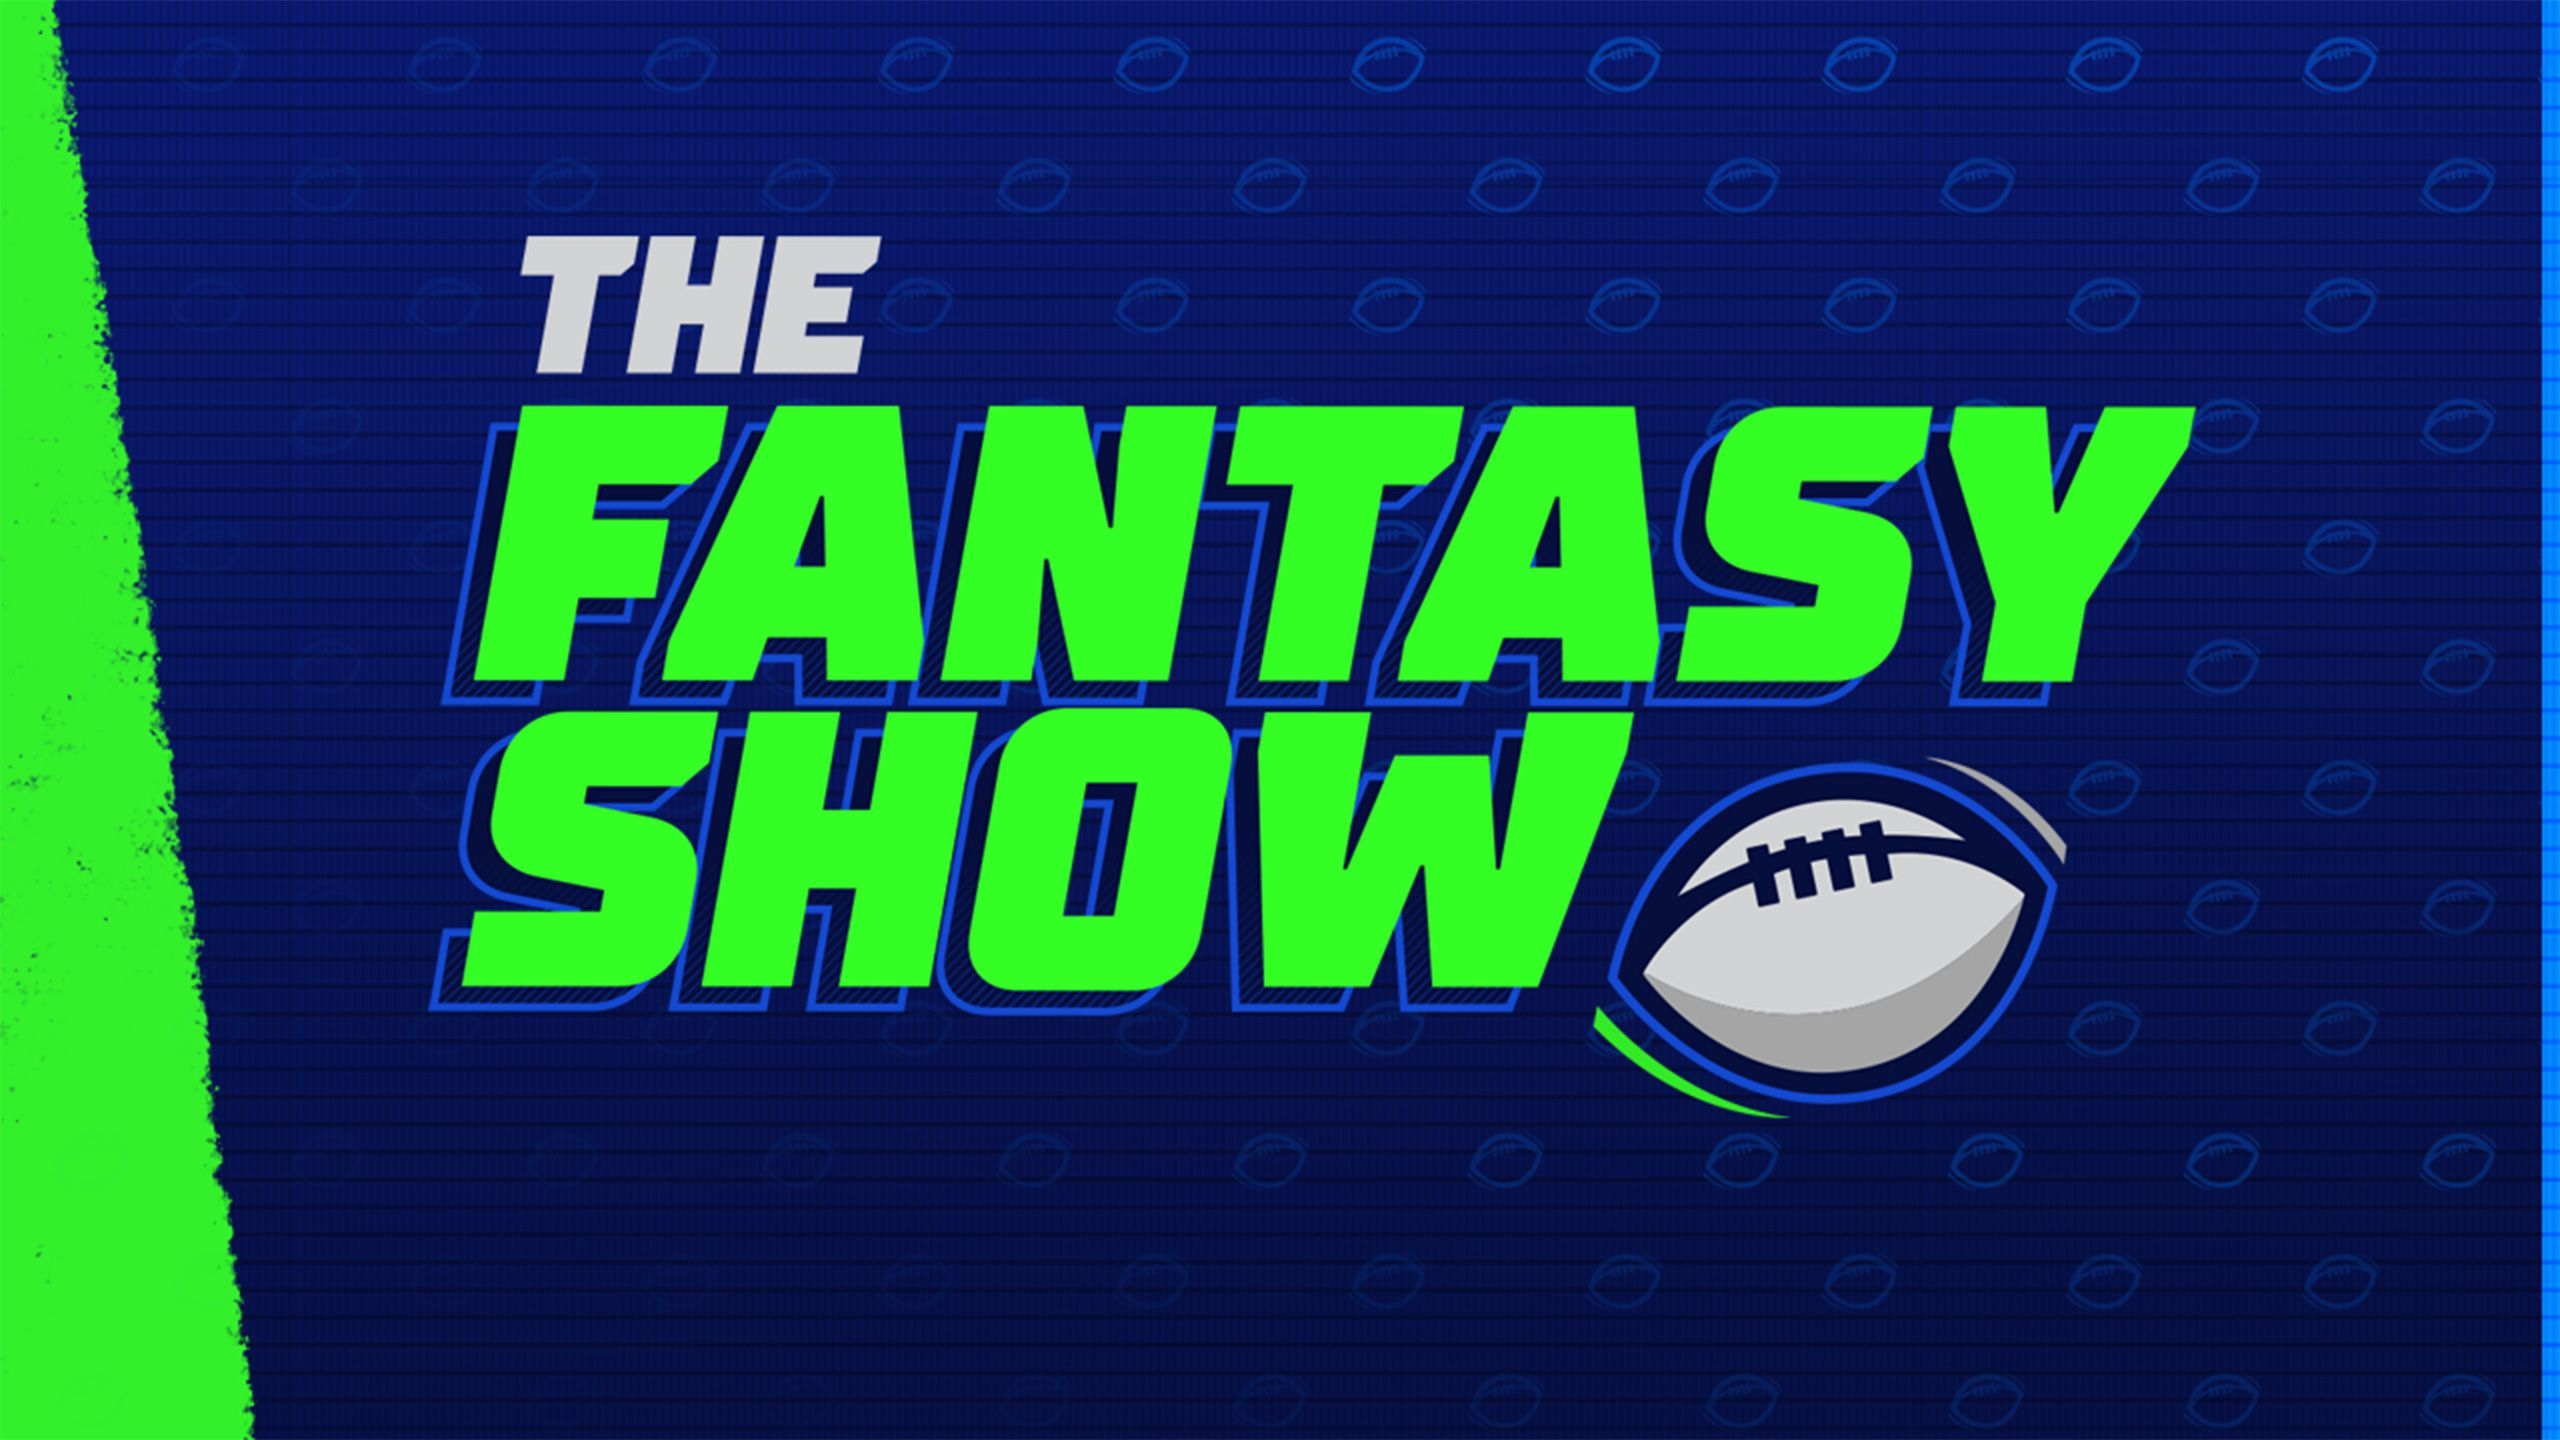 Mon, 12/11 - The Fantasy Show presented by E*Trade